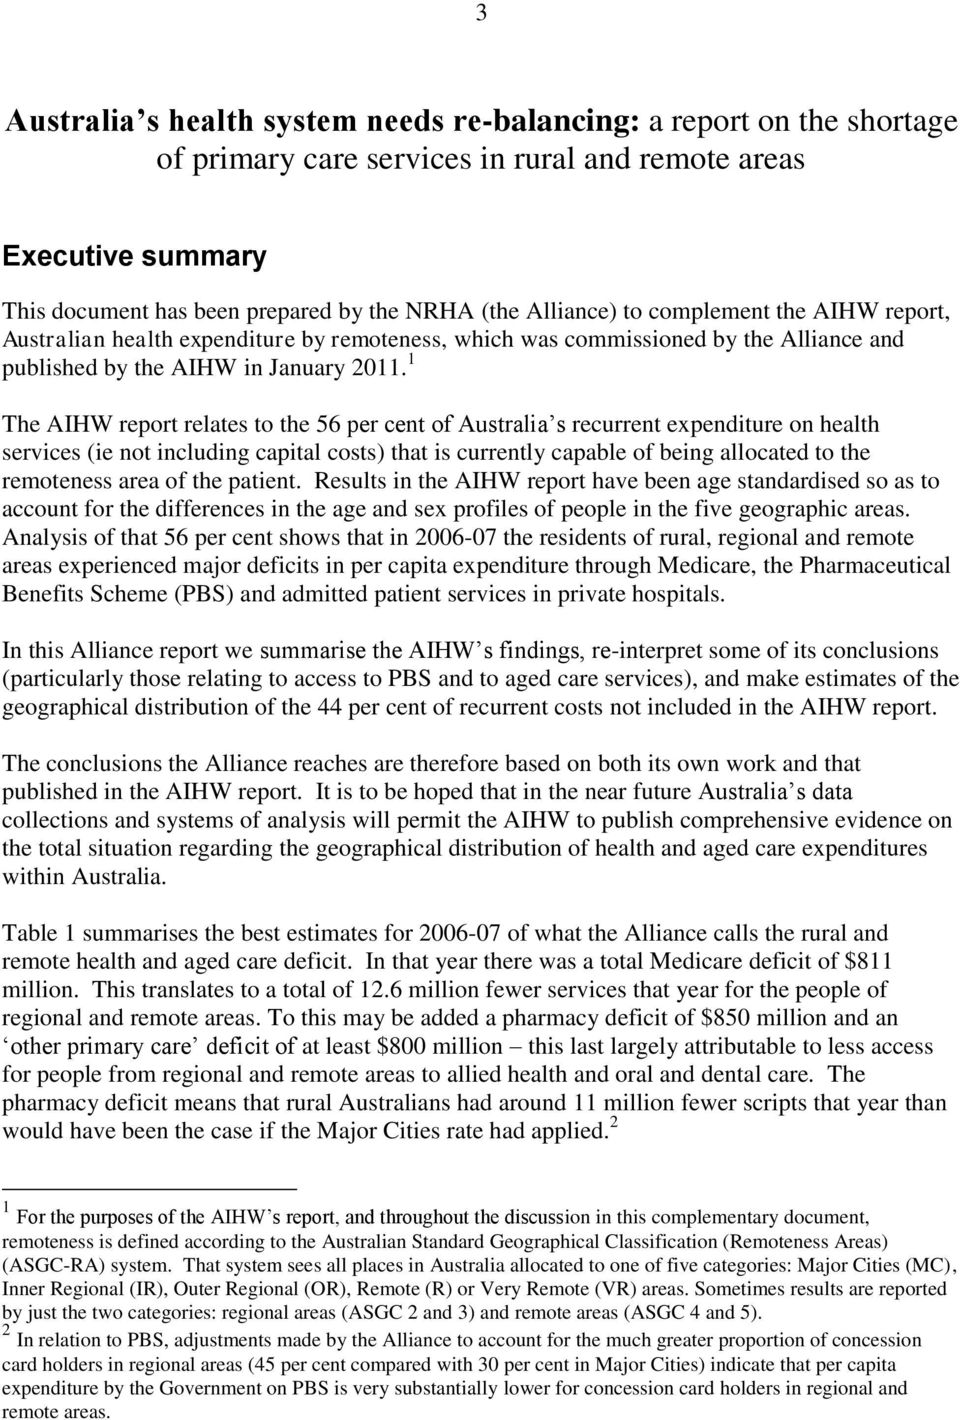 1 The AIHW report relates to the 56 per cent of Australia s recurrent expenditure on health services (ie not including capital costs) that is currently capable of being allocated to the remoteness